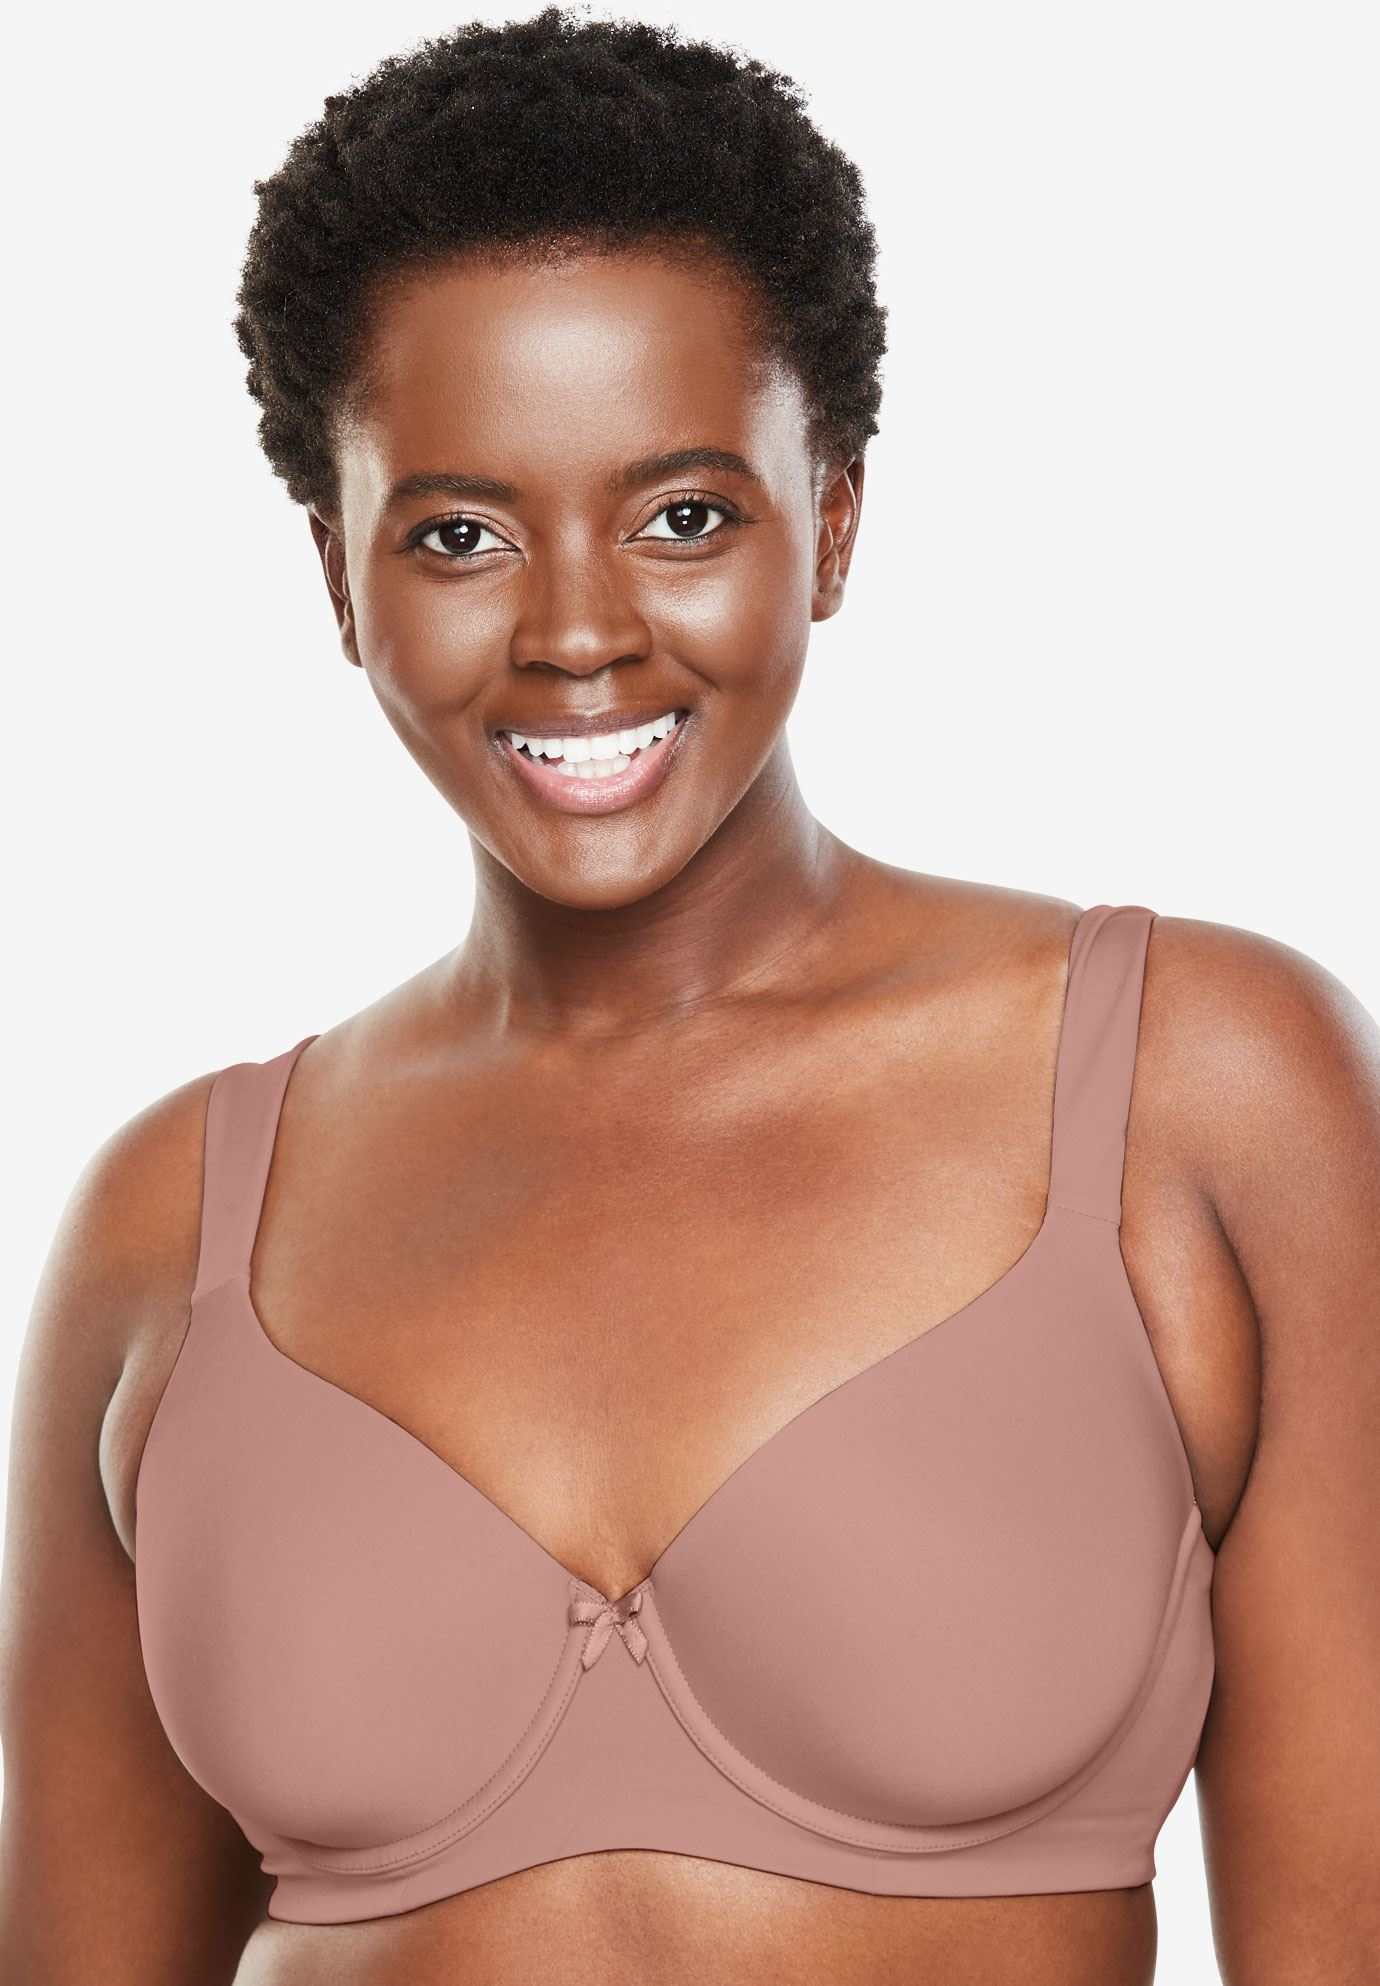 f1972ed275866 Balconette Underwire T-Shirt Bra by Leading Lady®